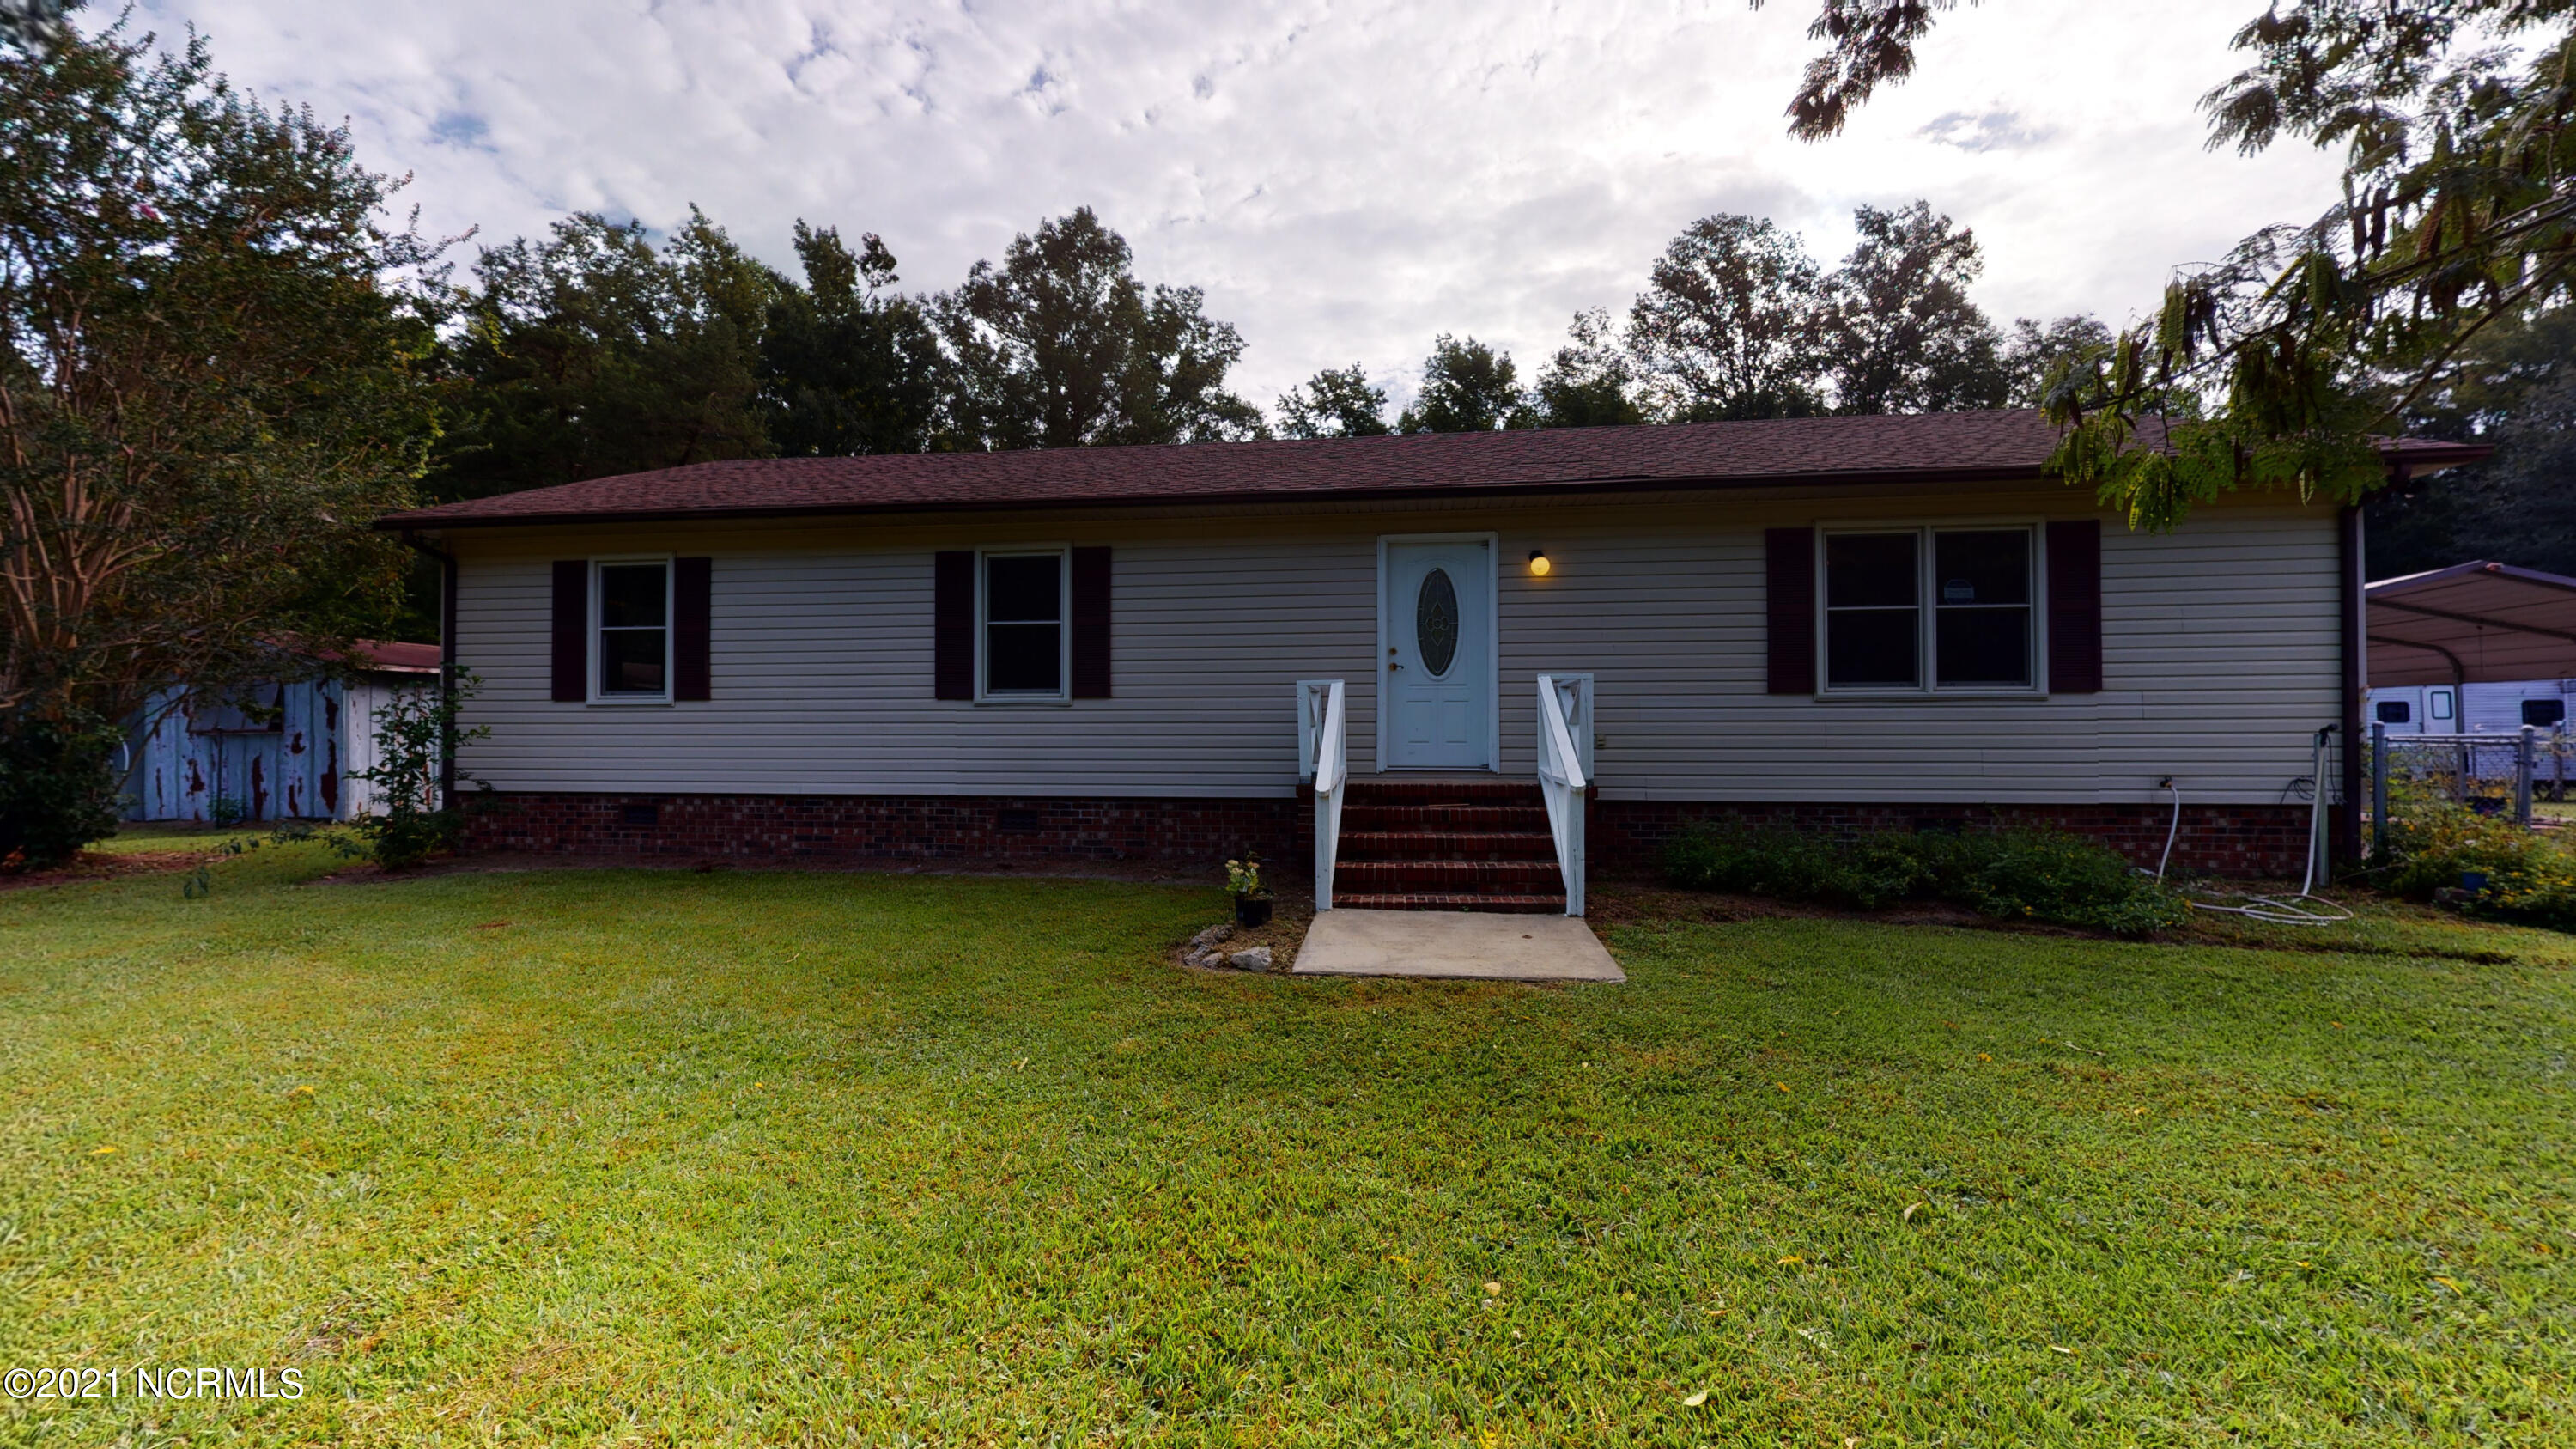 If you are looking for privacy and seclusion is what you're looking for as well as plenty of land, than I have the perfect home for you. This very cute home on 10 acres is what you are looking for. Just a minutes from Richlands and Kinston; this home is perfectly located off of Hwy 258. Hardwood trees in front of this 10 acre lot makes not only the drive toward the home so  private and secluded. Don't miss out on this GEM...call me Today for you private tour!